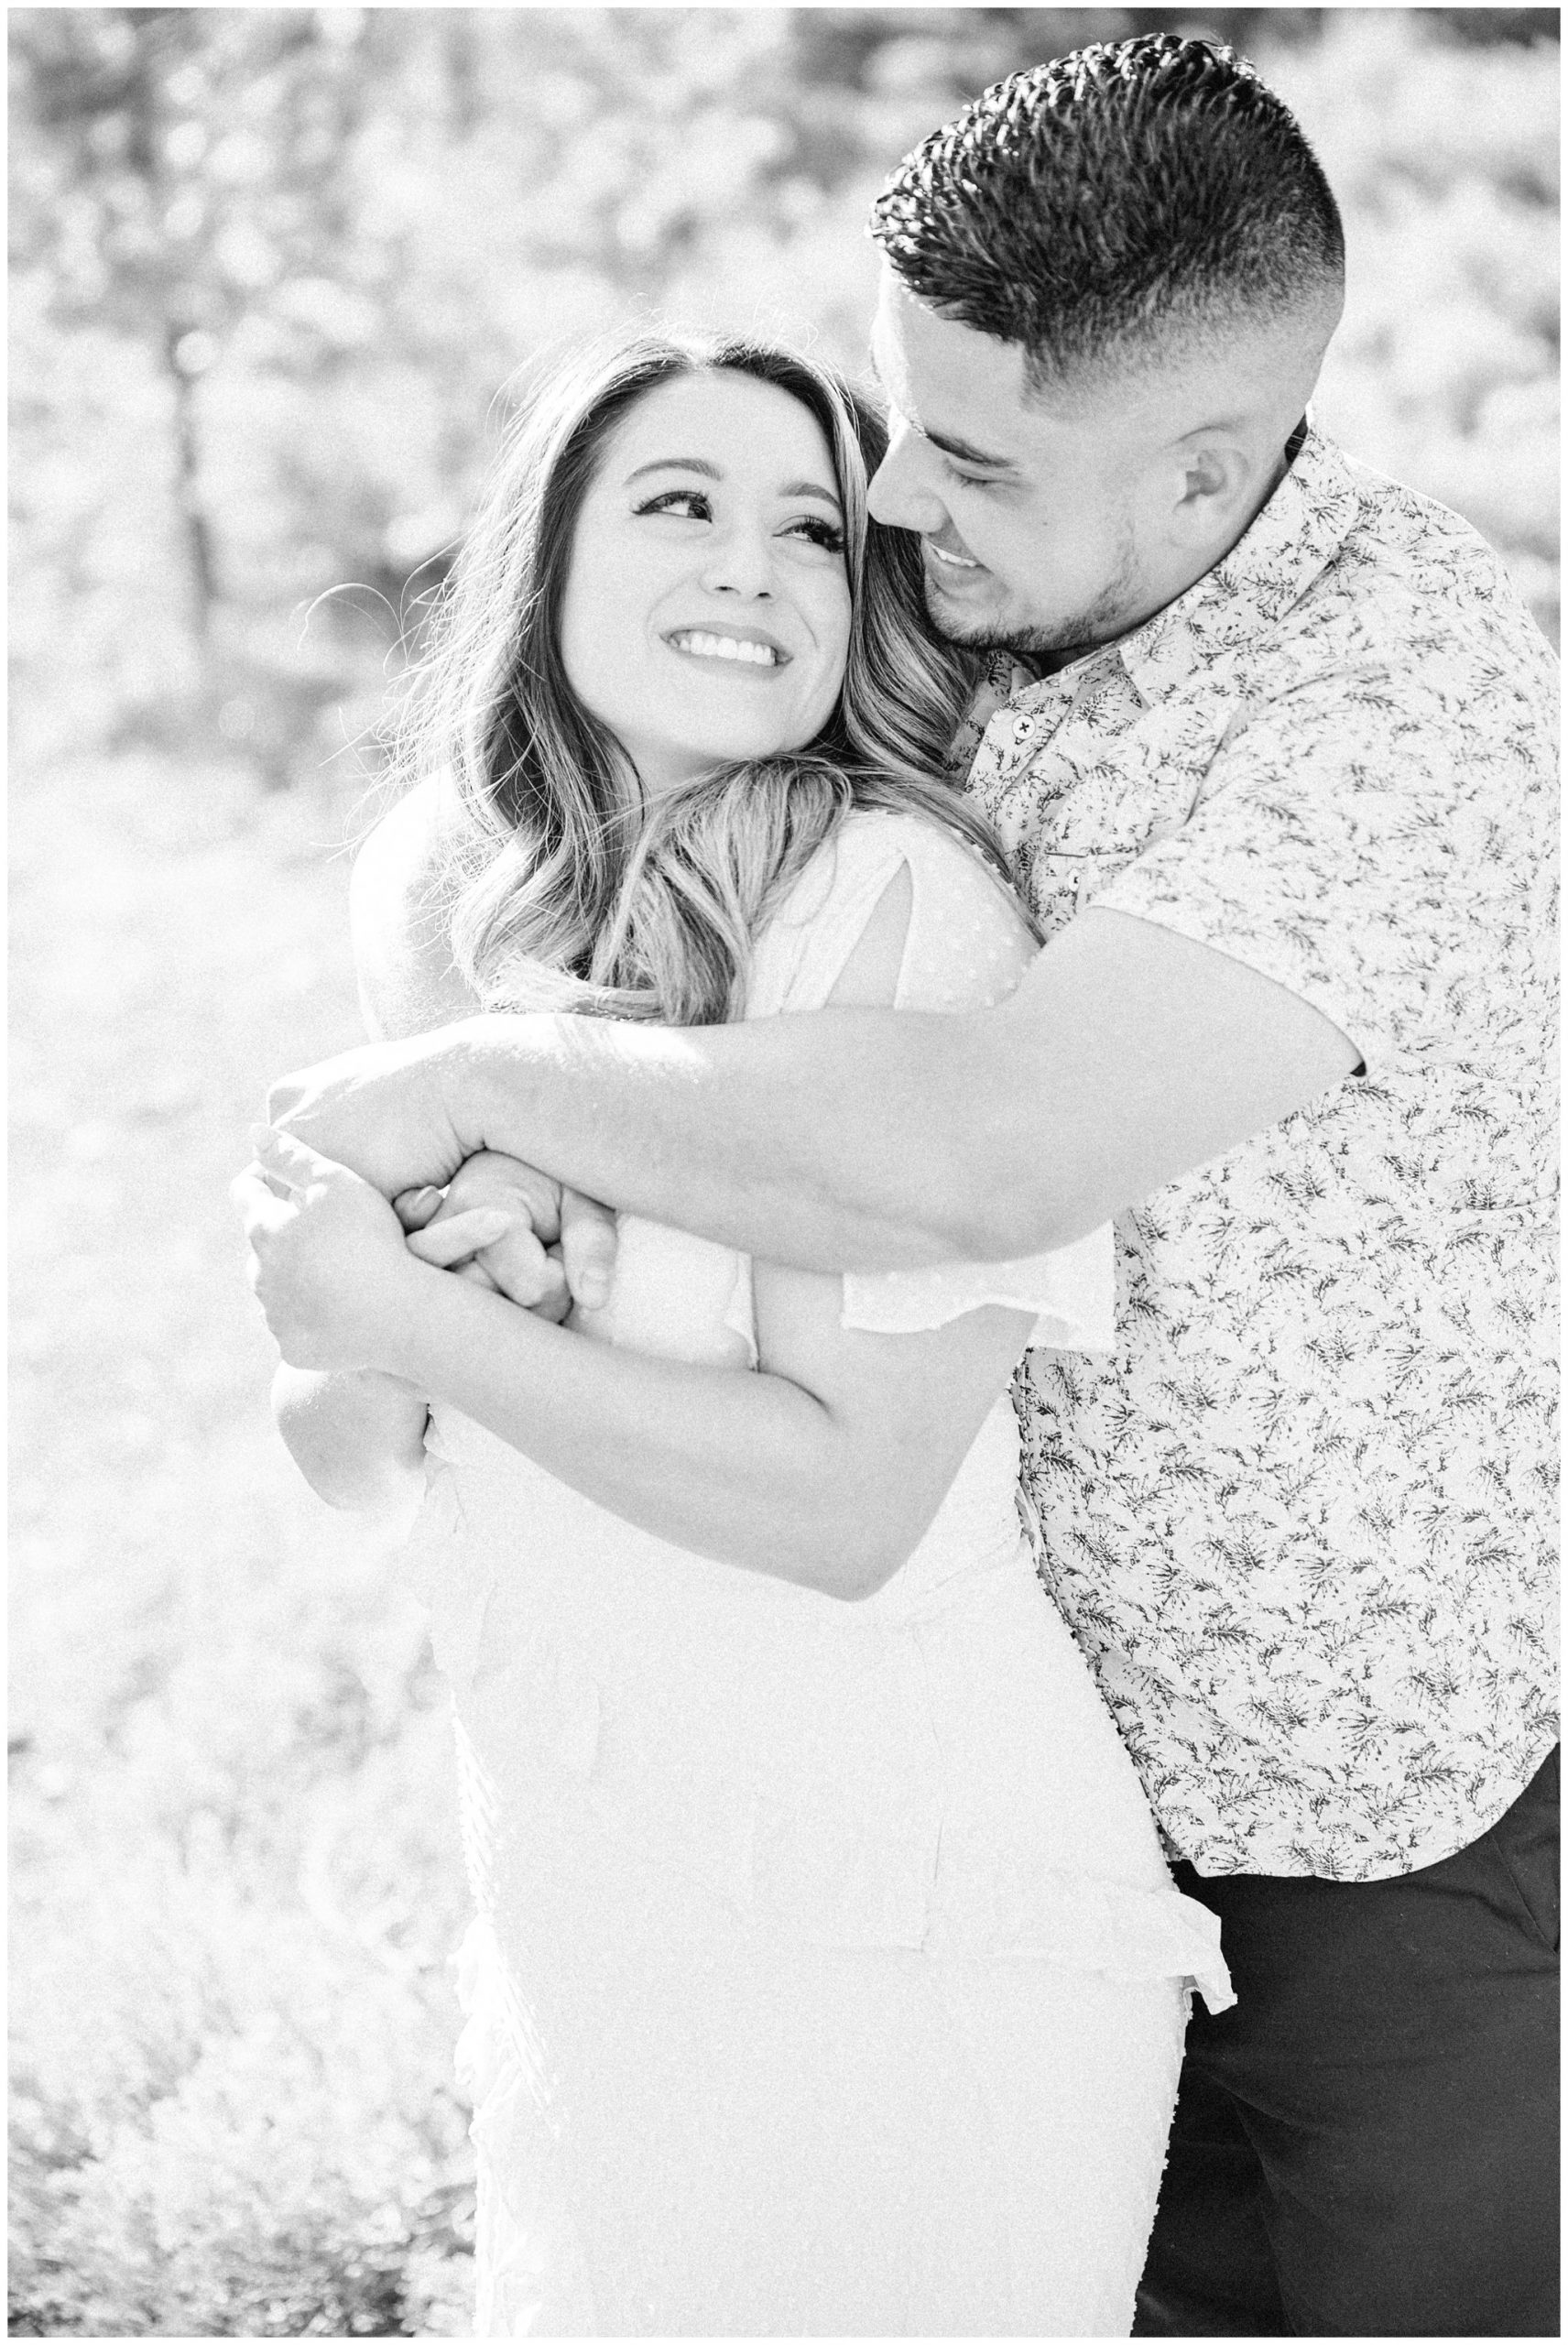 Couple hugging each other during their spring engagement session, black and white image of couple